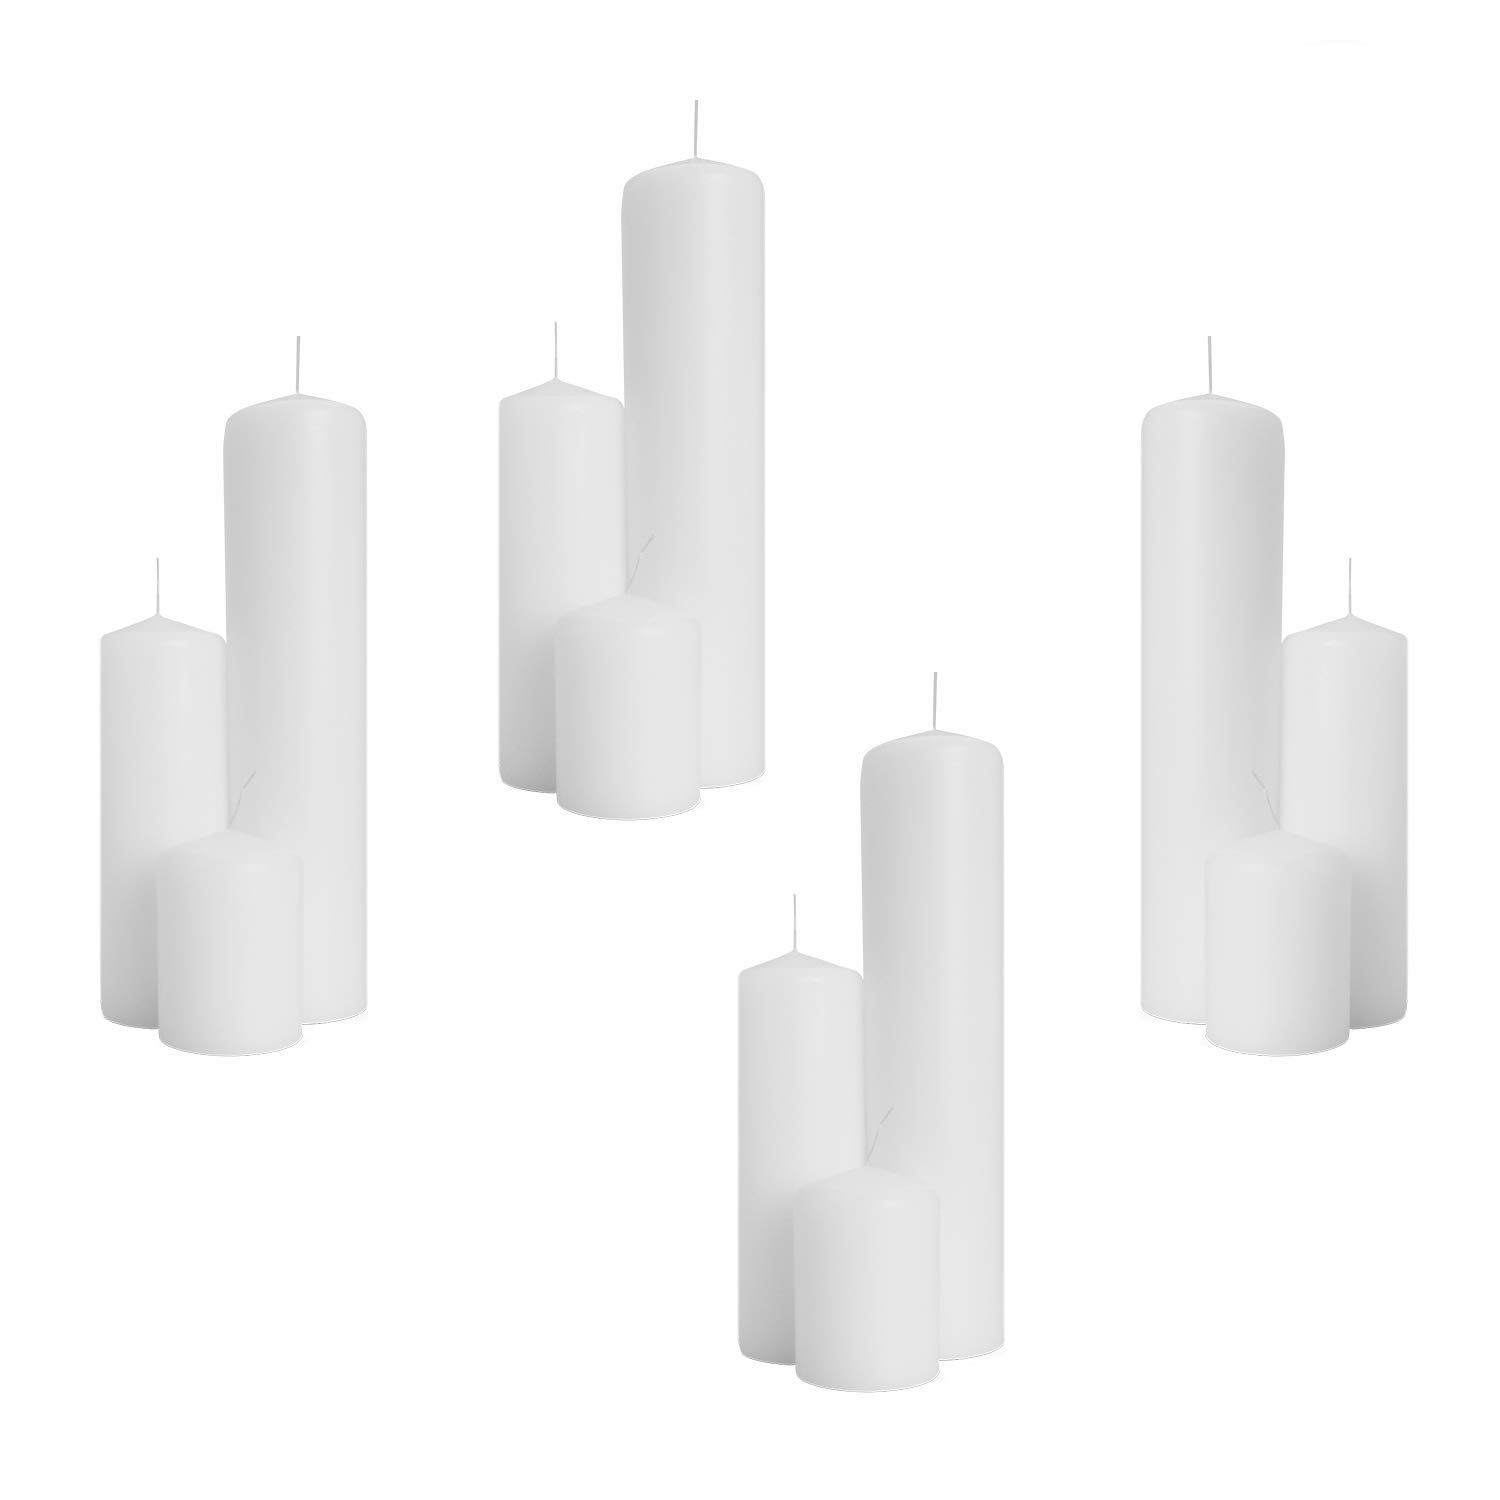 Royal Imports 4 Sets 2'' Pillar Candles (12 Candles) Wedding, Birthday, Holiday & Home Decoration, 2x3, 2x6, 2x9, White Wax